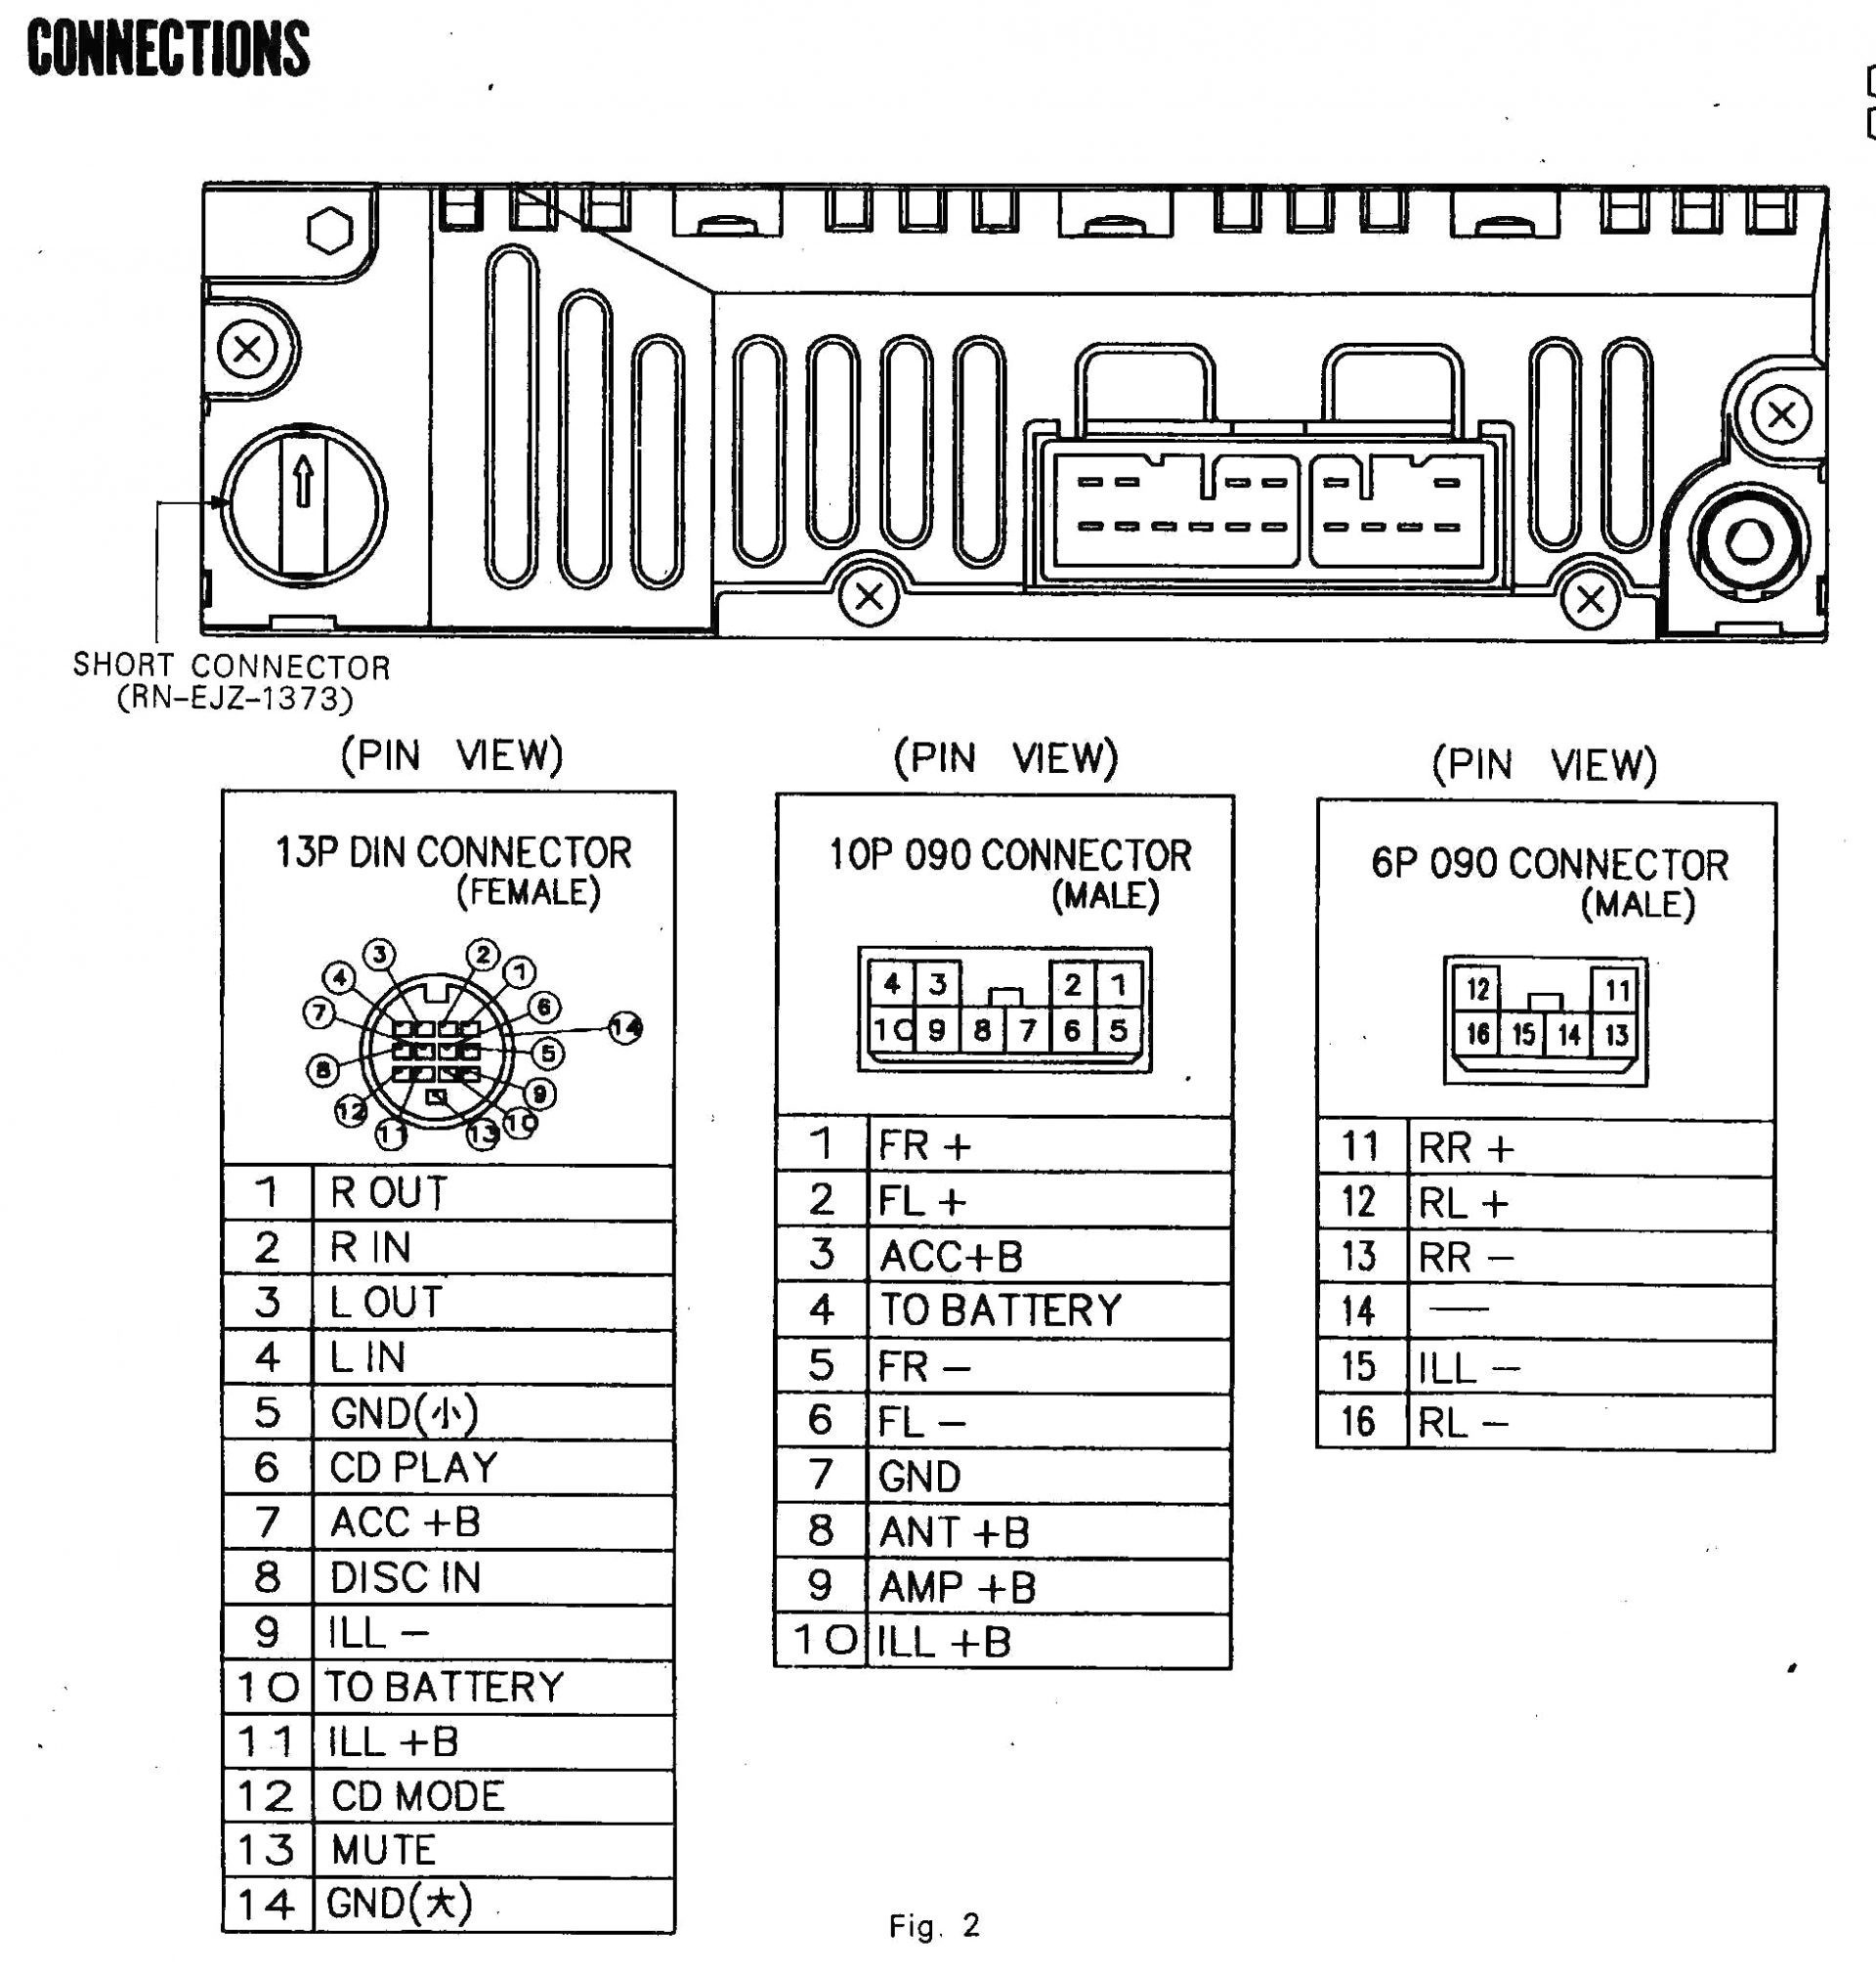 BMW E34 Website Source · Kenwood Cd Player Wiring Diagram Awesome Wiring  Diagram Image Kenwood Cd Changer Wiring Diagram Kenwood Car